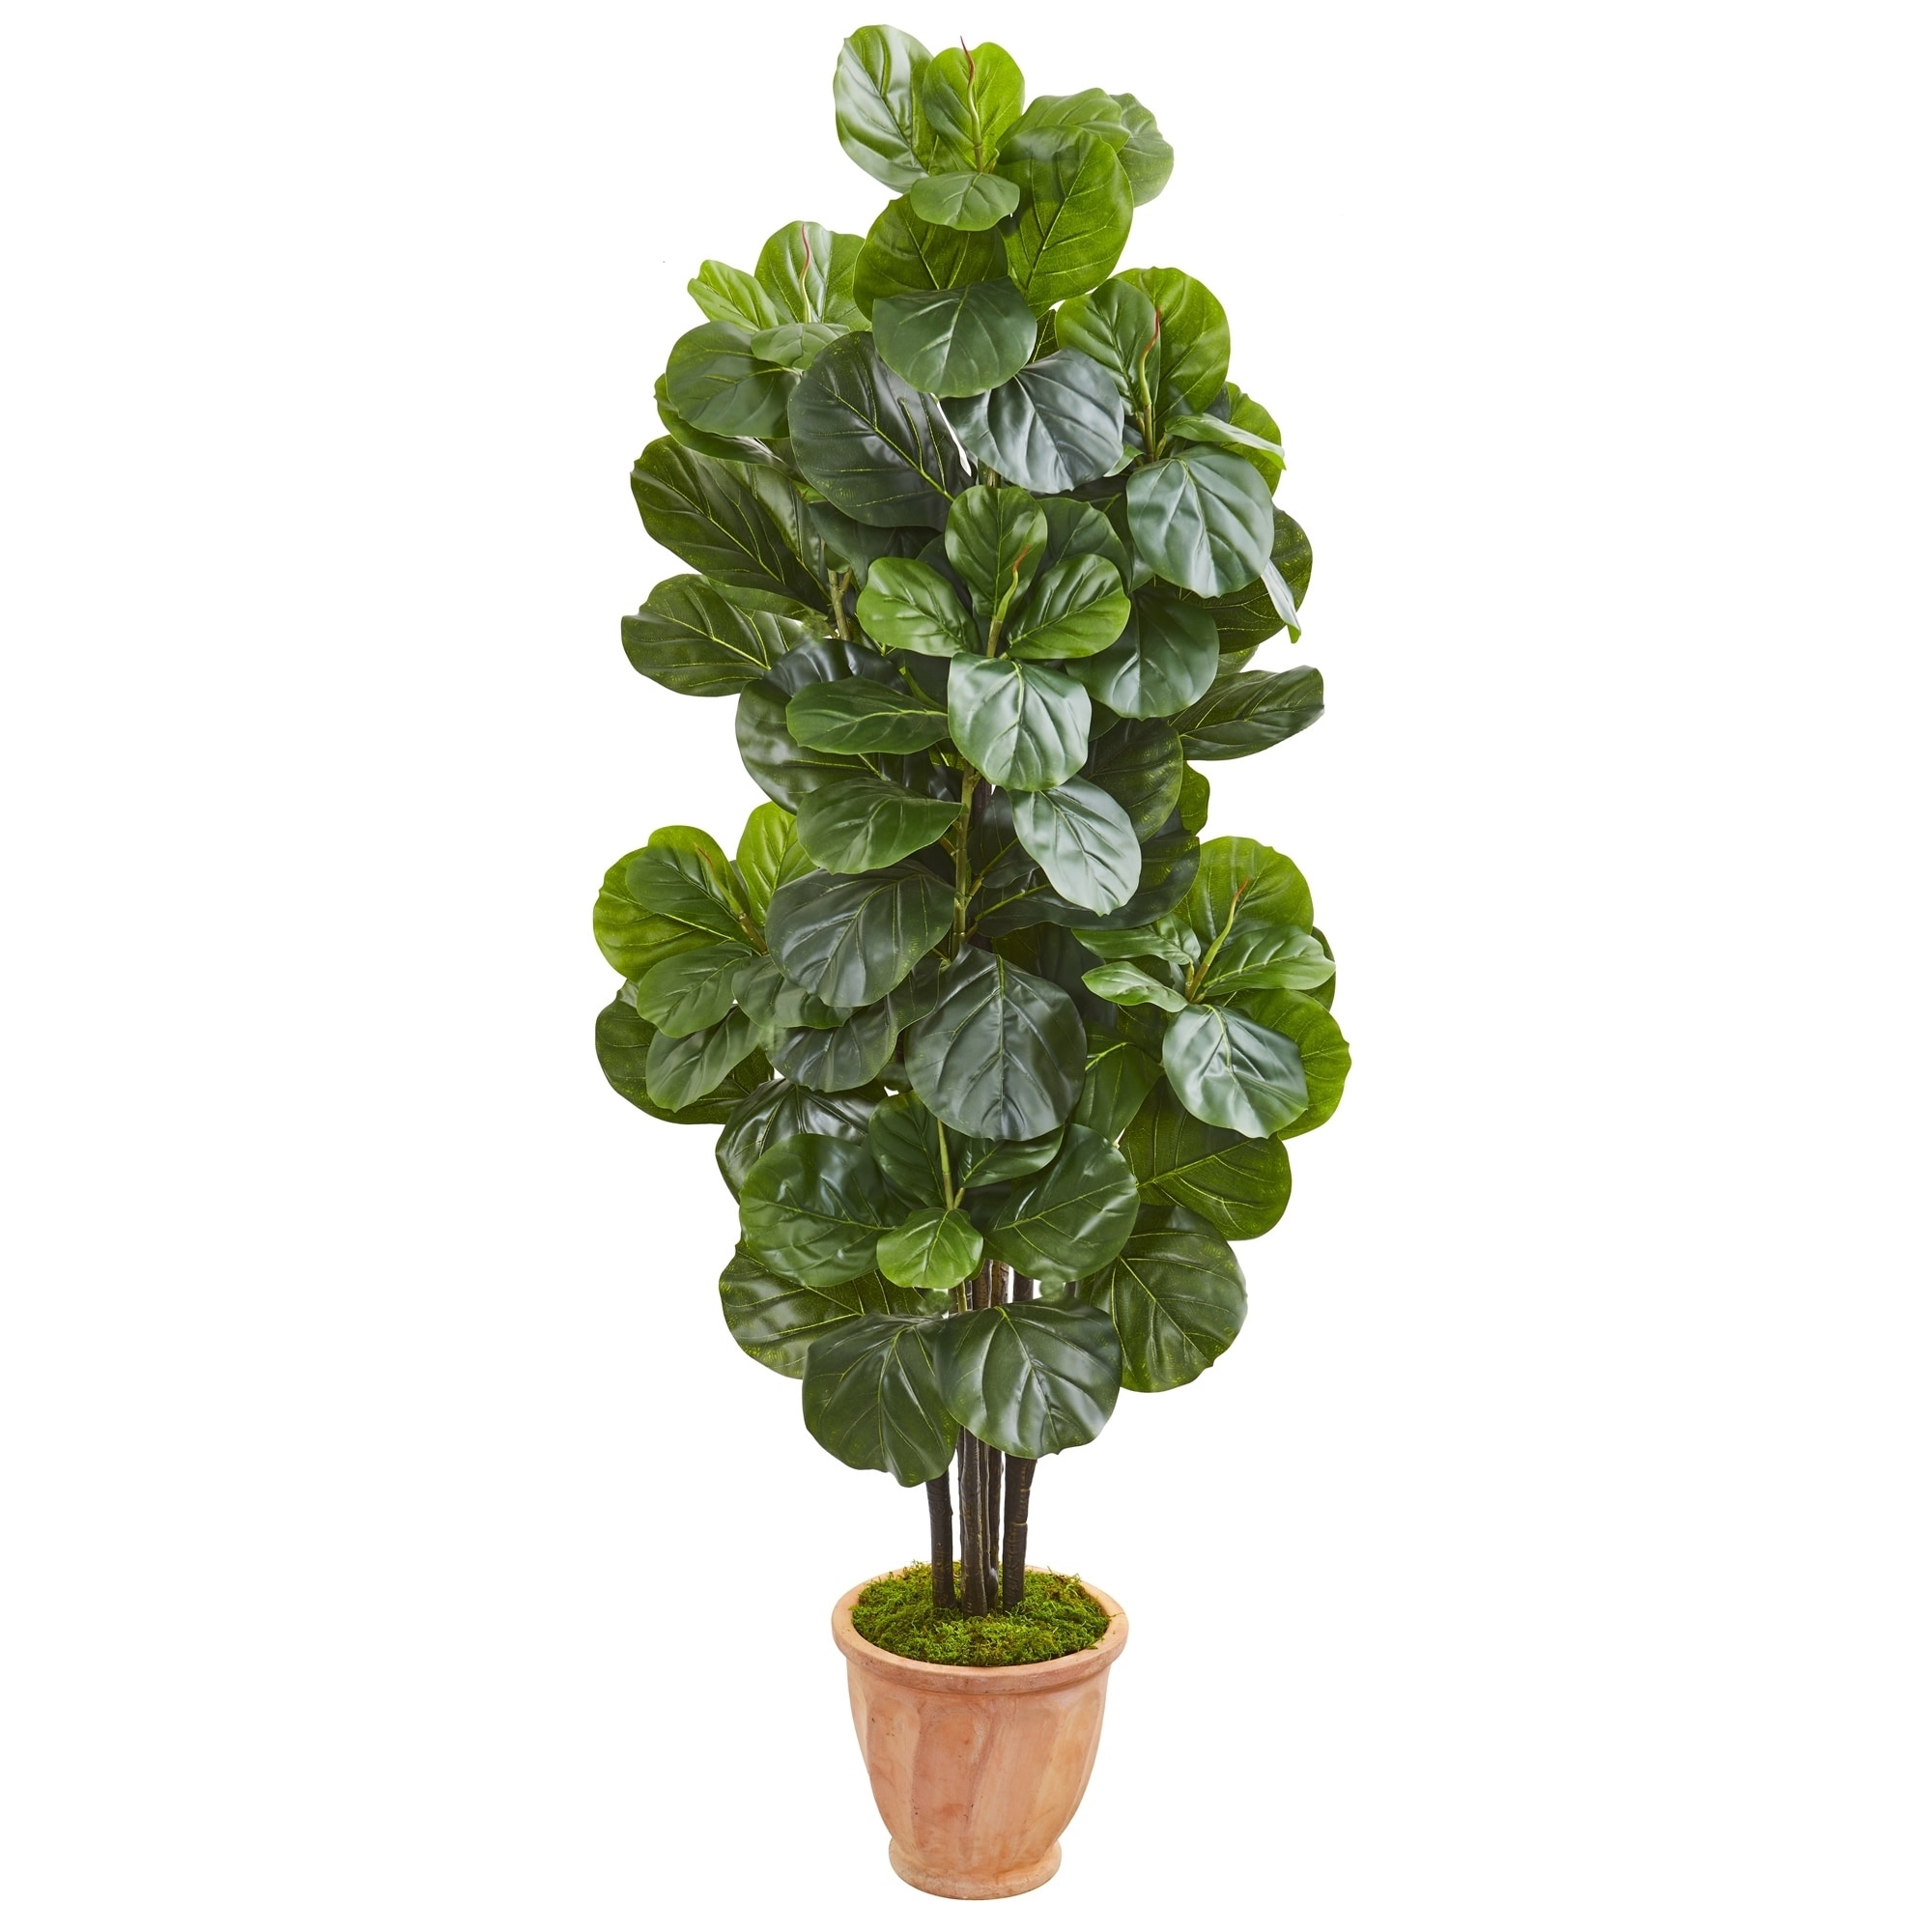 67 Fiddle Leaf Fig Artificial Tree in Terracotta Planter